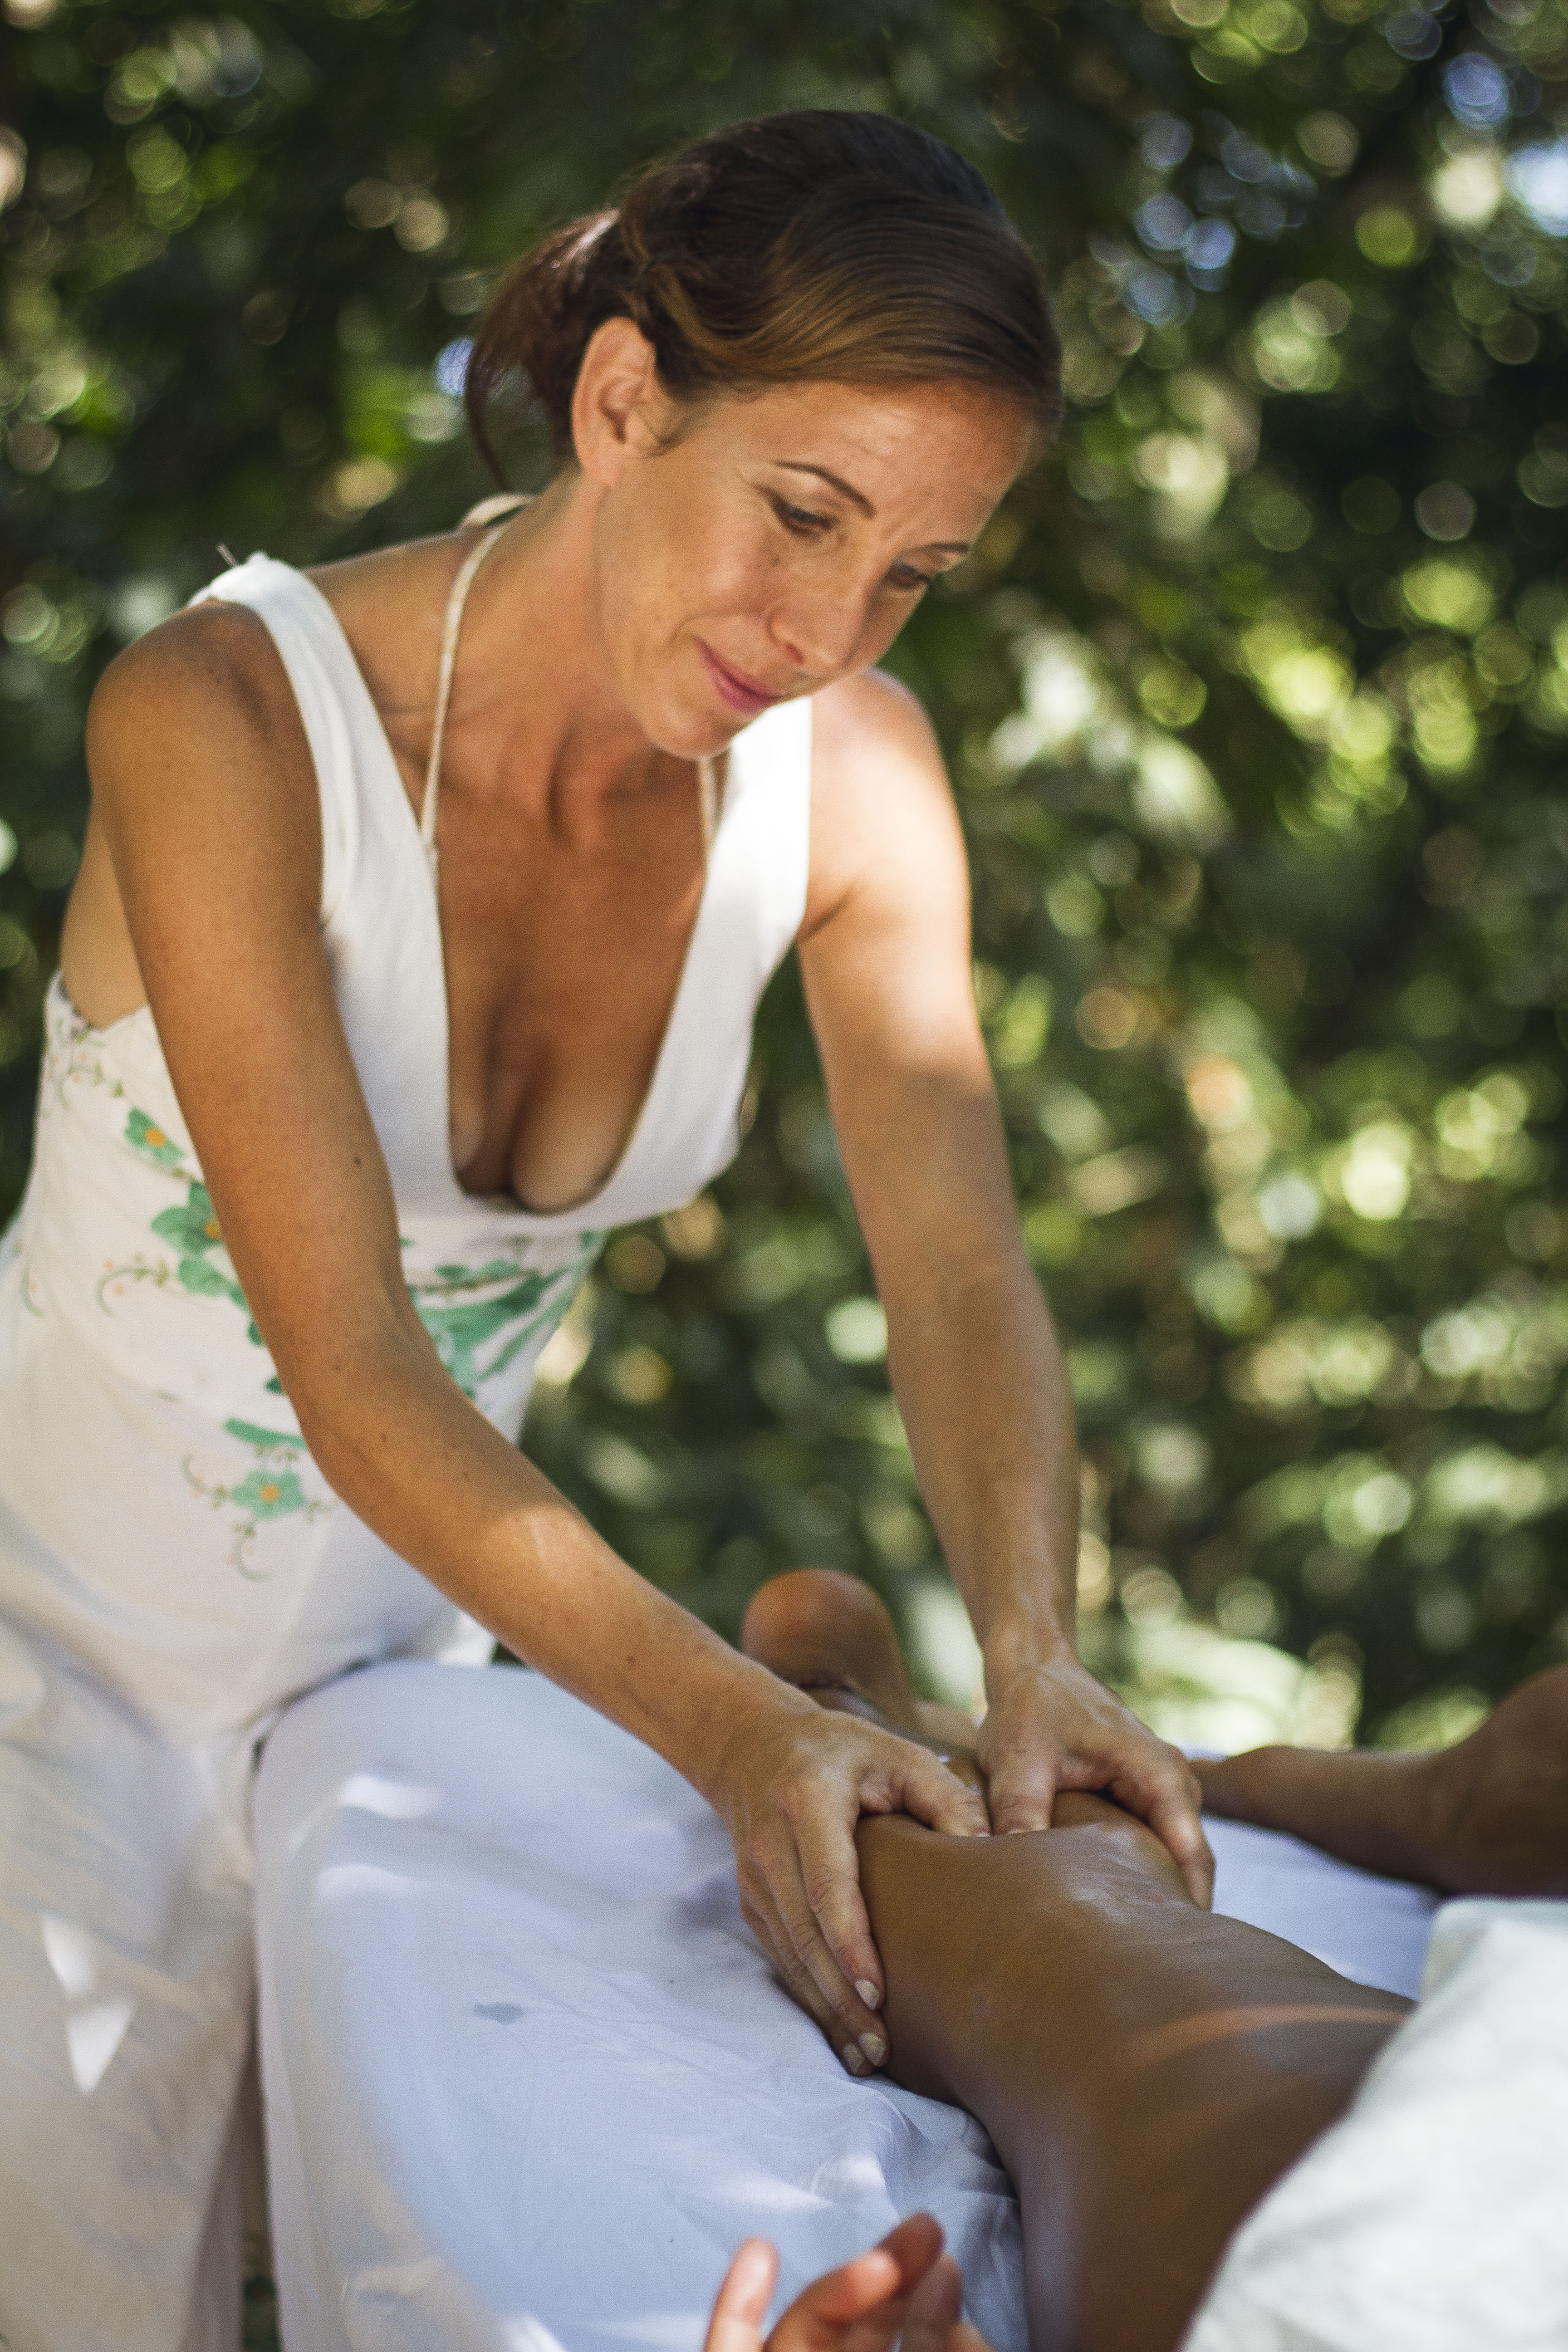 Massage in the forest